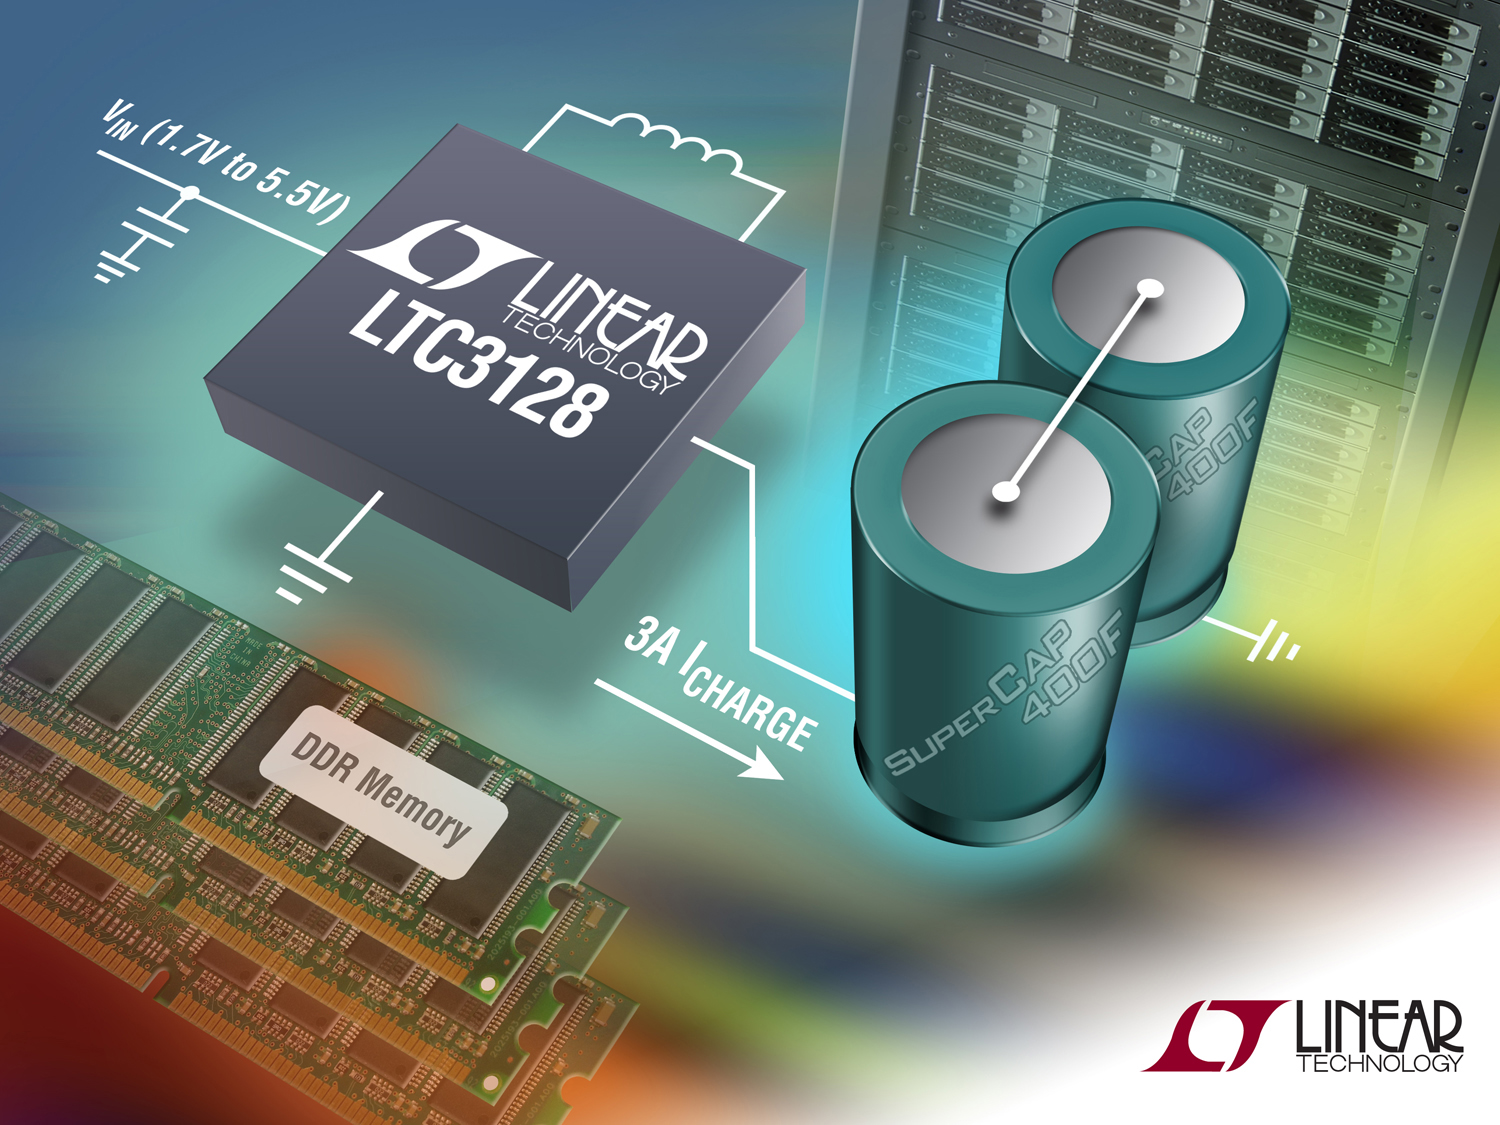 Battery Power Online 3a Buck Boost Super Capacitor Charger Charge Circuit Linear Technology Corp Has Introduced The Ltc3128 A High Efficiency Input Current Limited Supercapacitor With Active Balancing